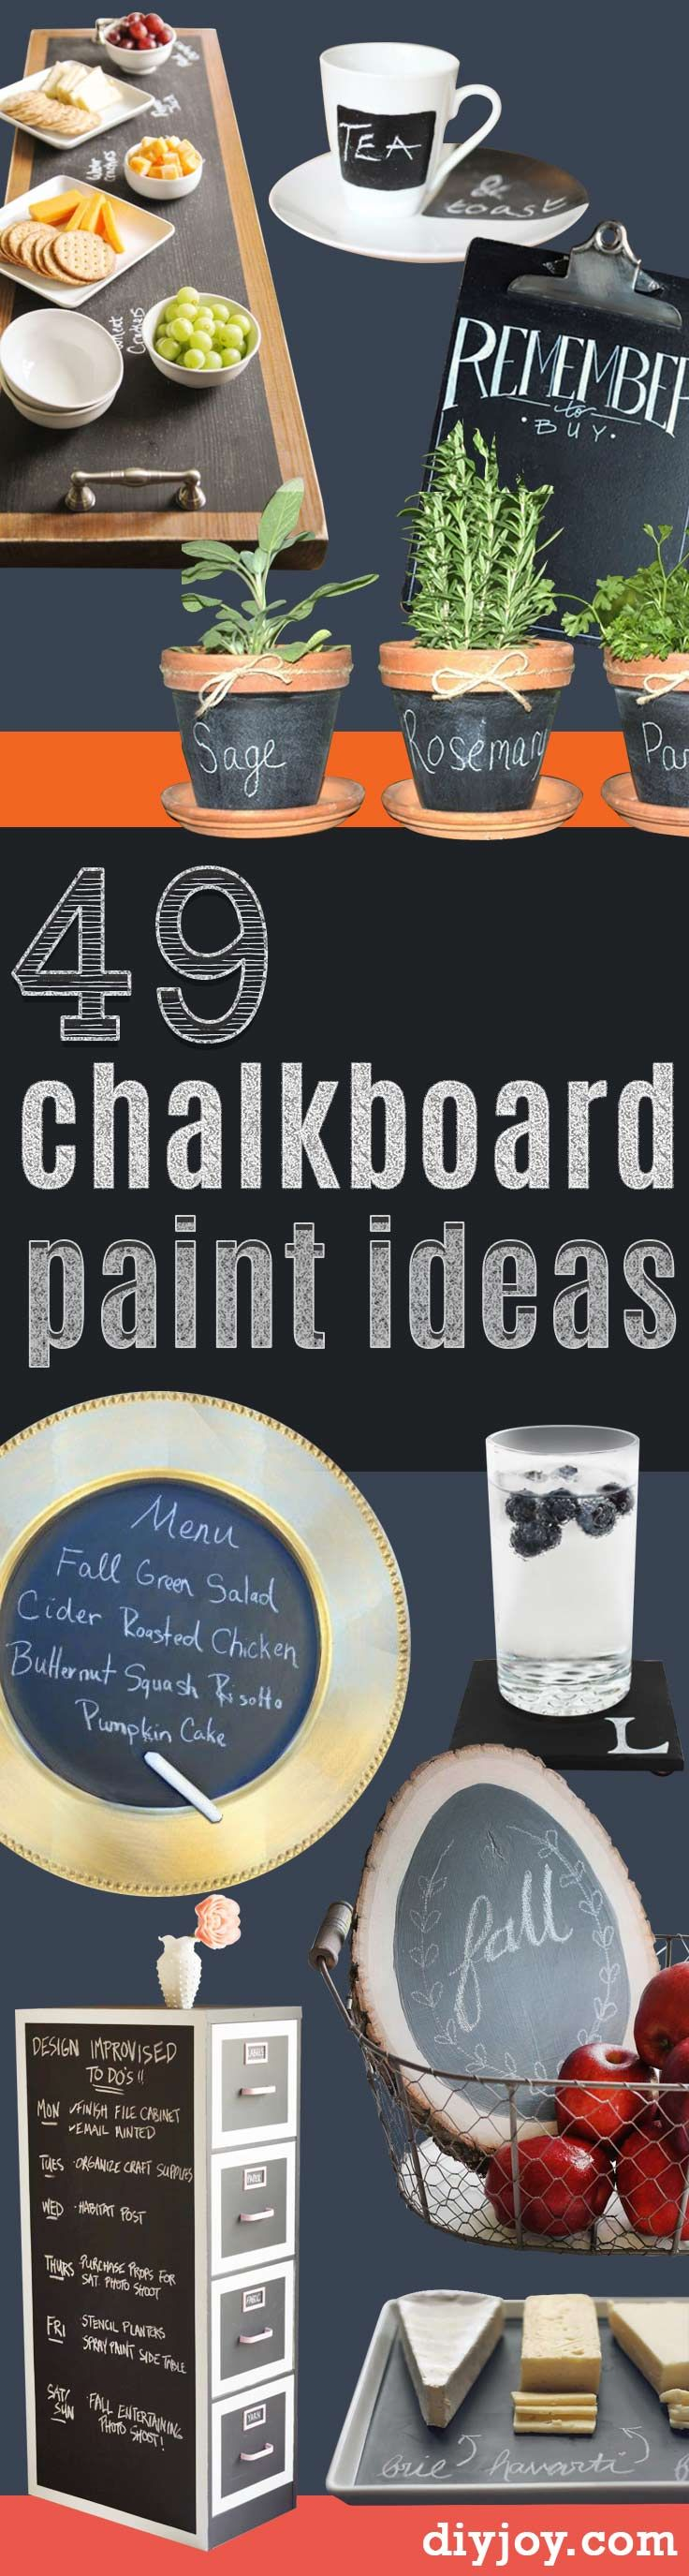 decorative chalkboards for various functions. 49 Chalkboard Paint Ideas Decorative Chalkboards For Various Functions U